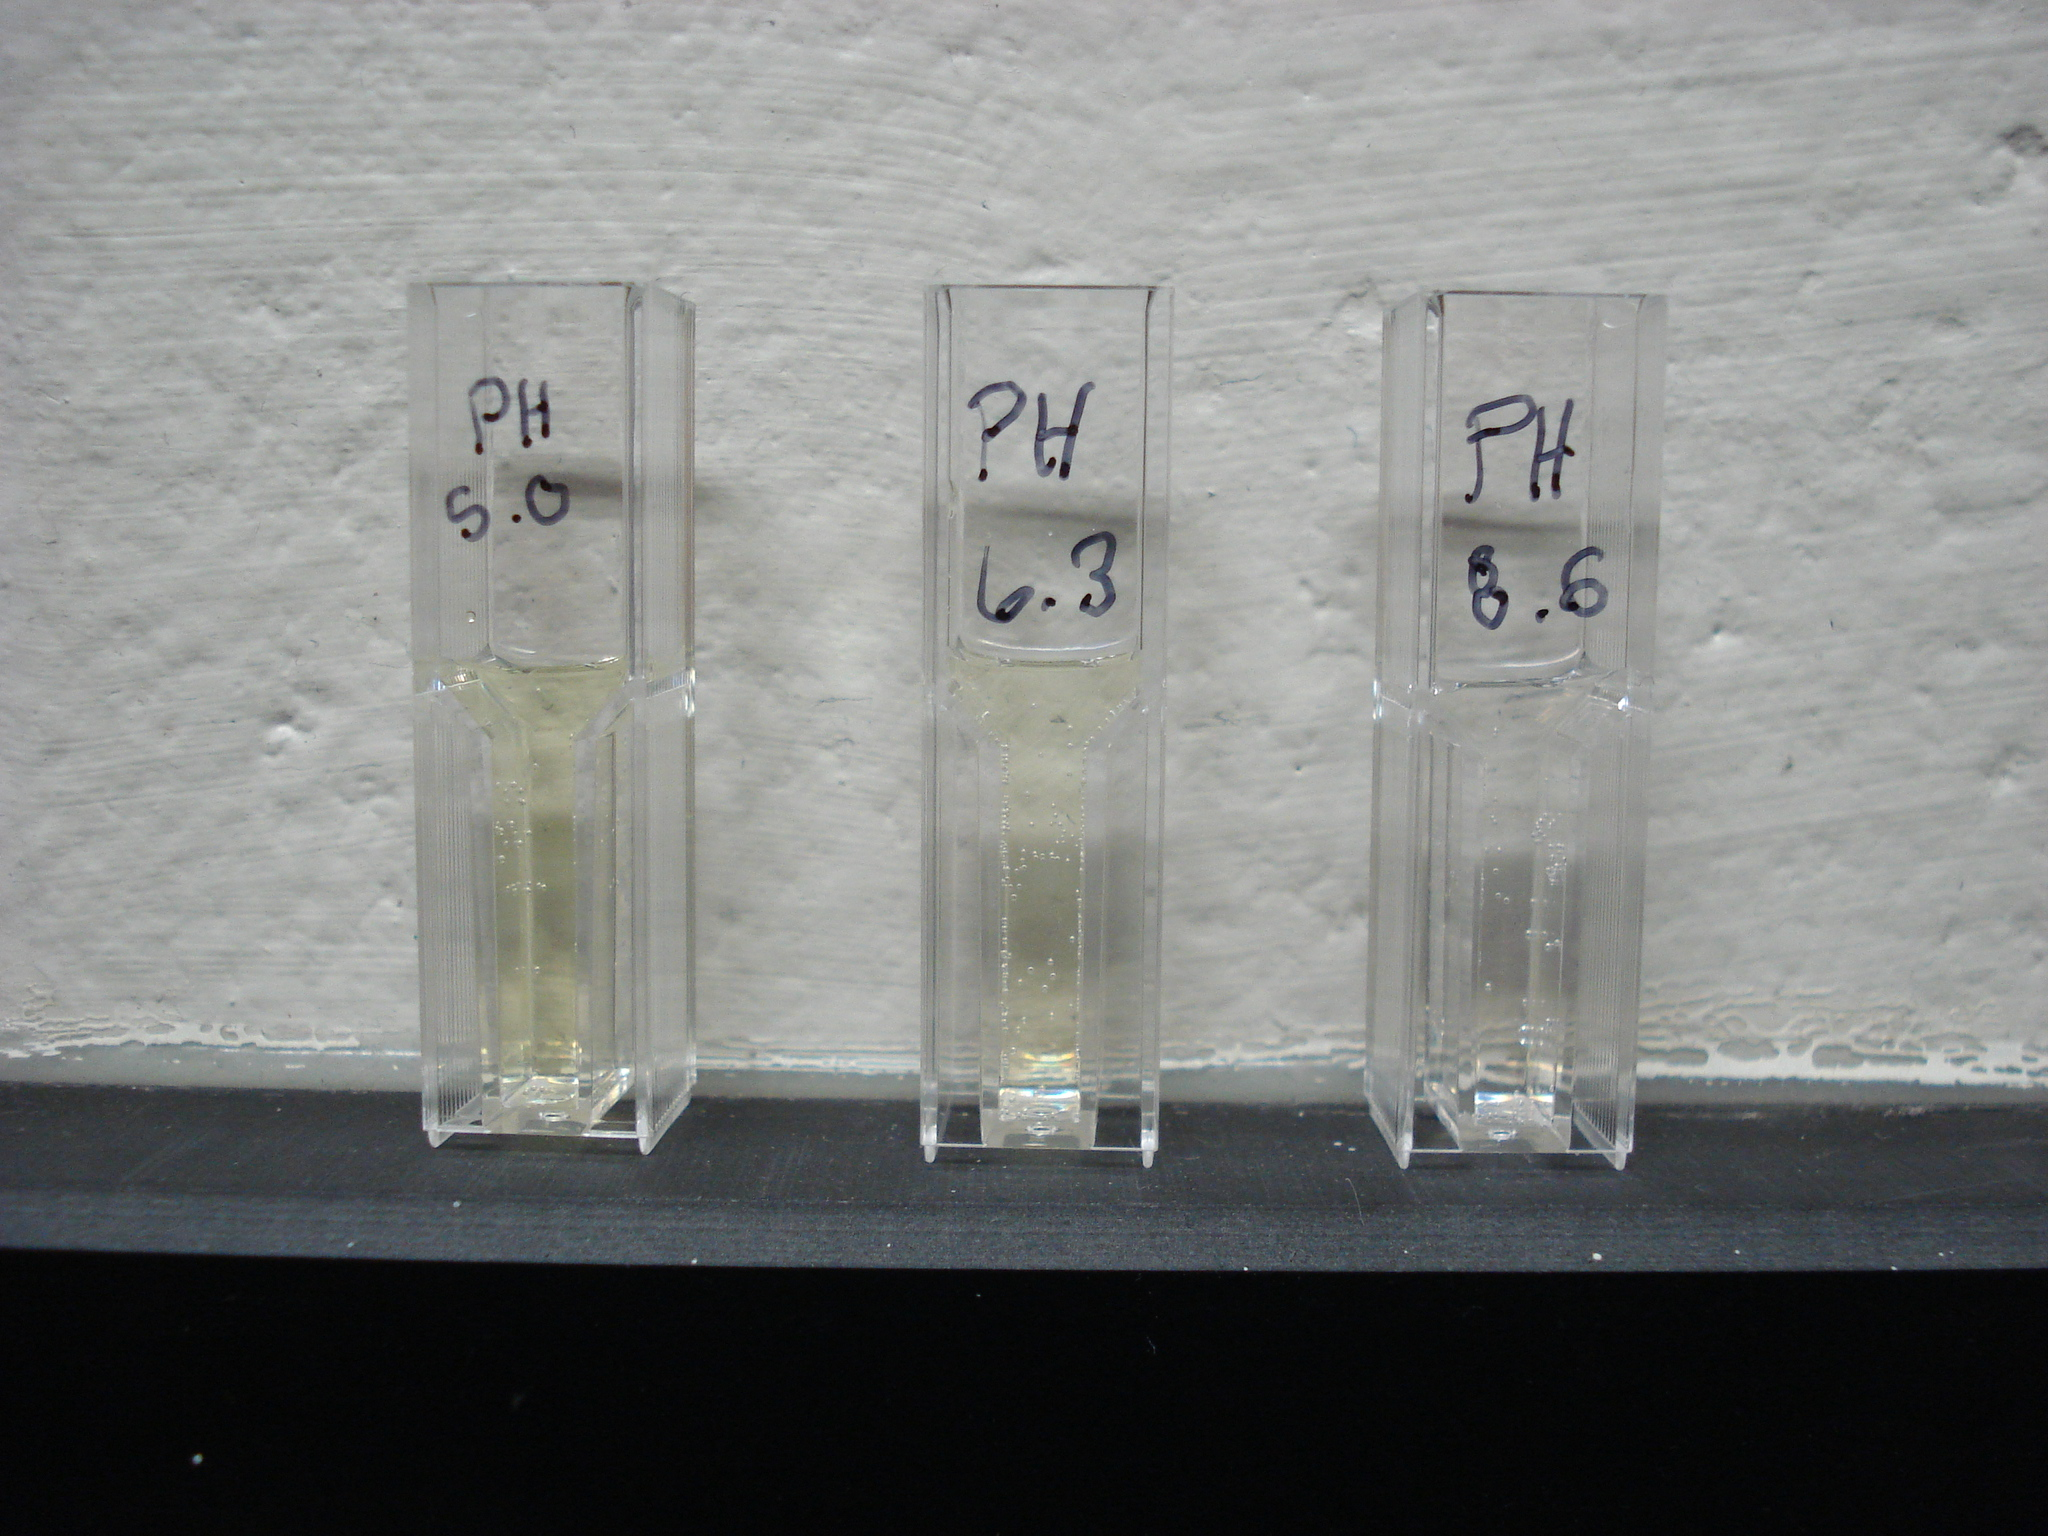 Enzyme Concentration Lab of Enzyme Concentration on